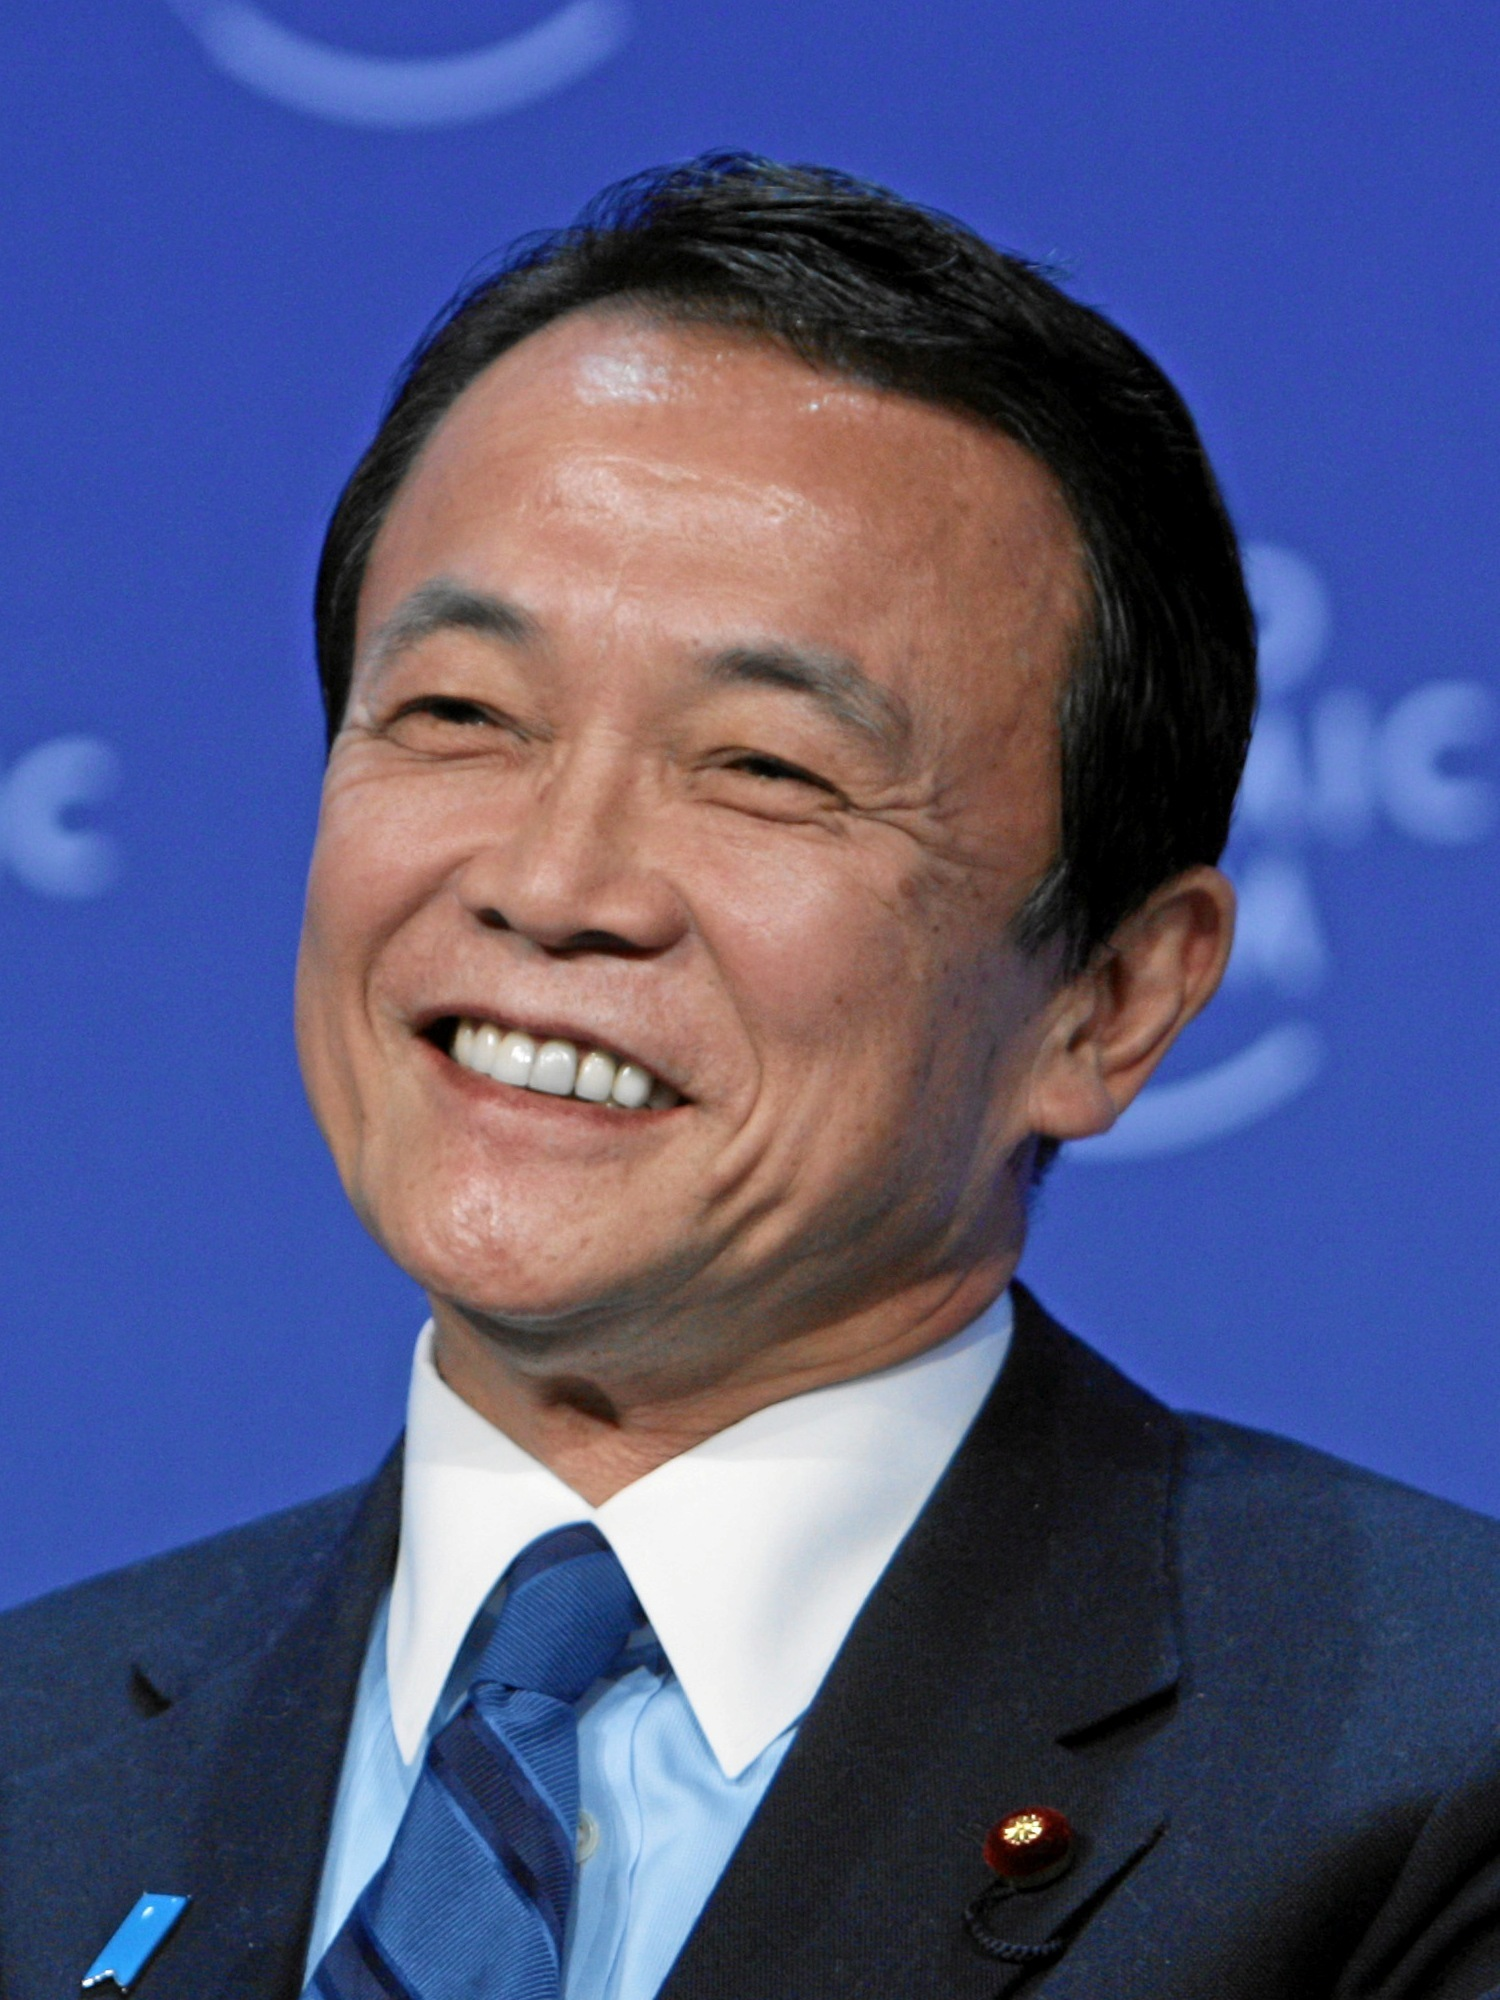 Taro_Aso_in_World_Economic_Forum_Annual_Meeting_in_Davos_(cropped)[1]